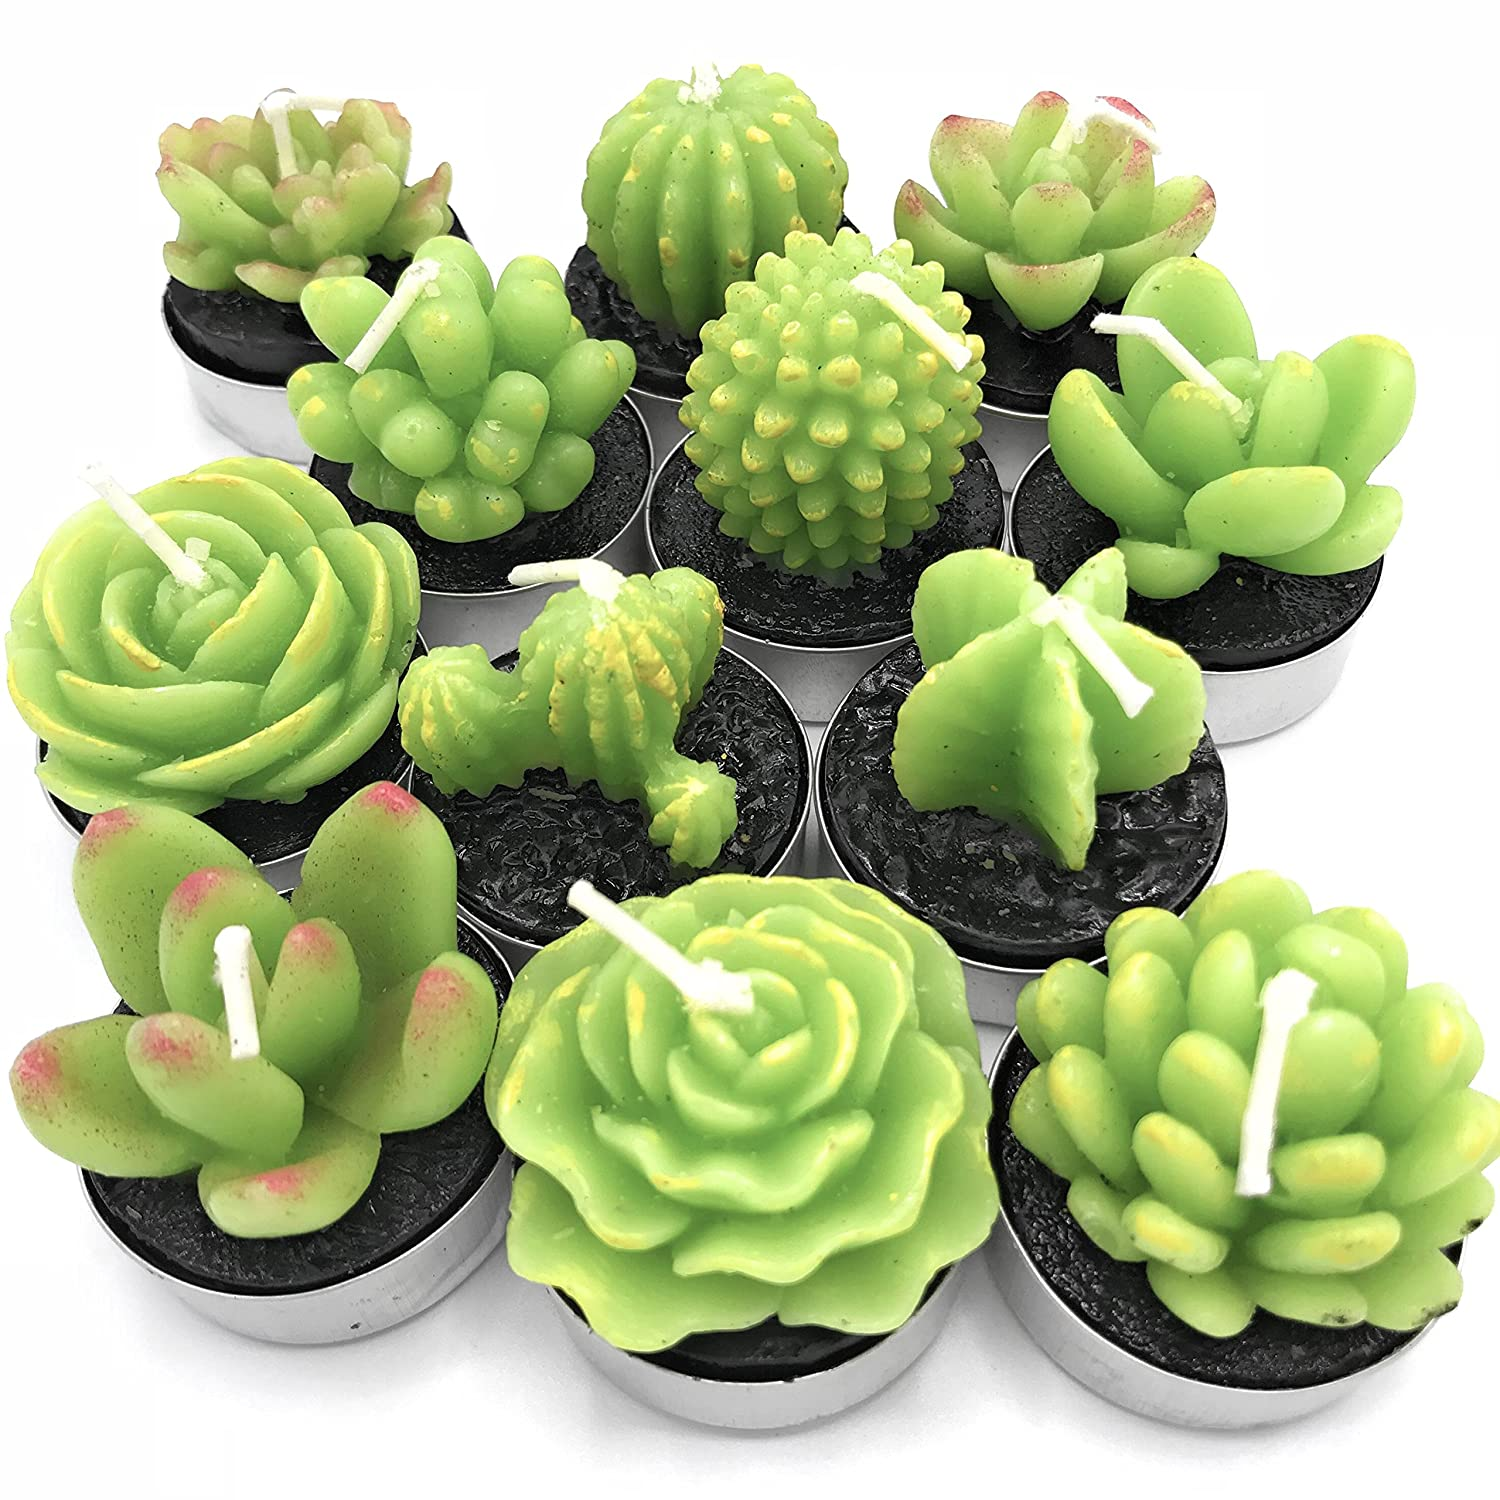 Succulent Cactus Candles Decor in Tealight holders 12 Unique Designs Tinker Factory